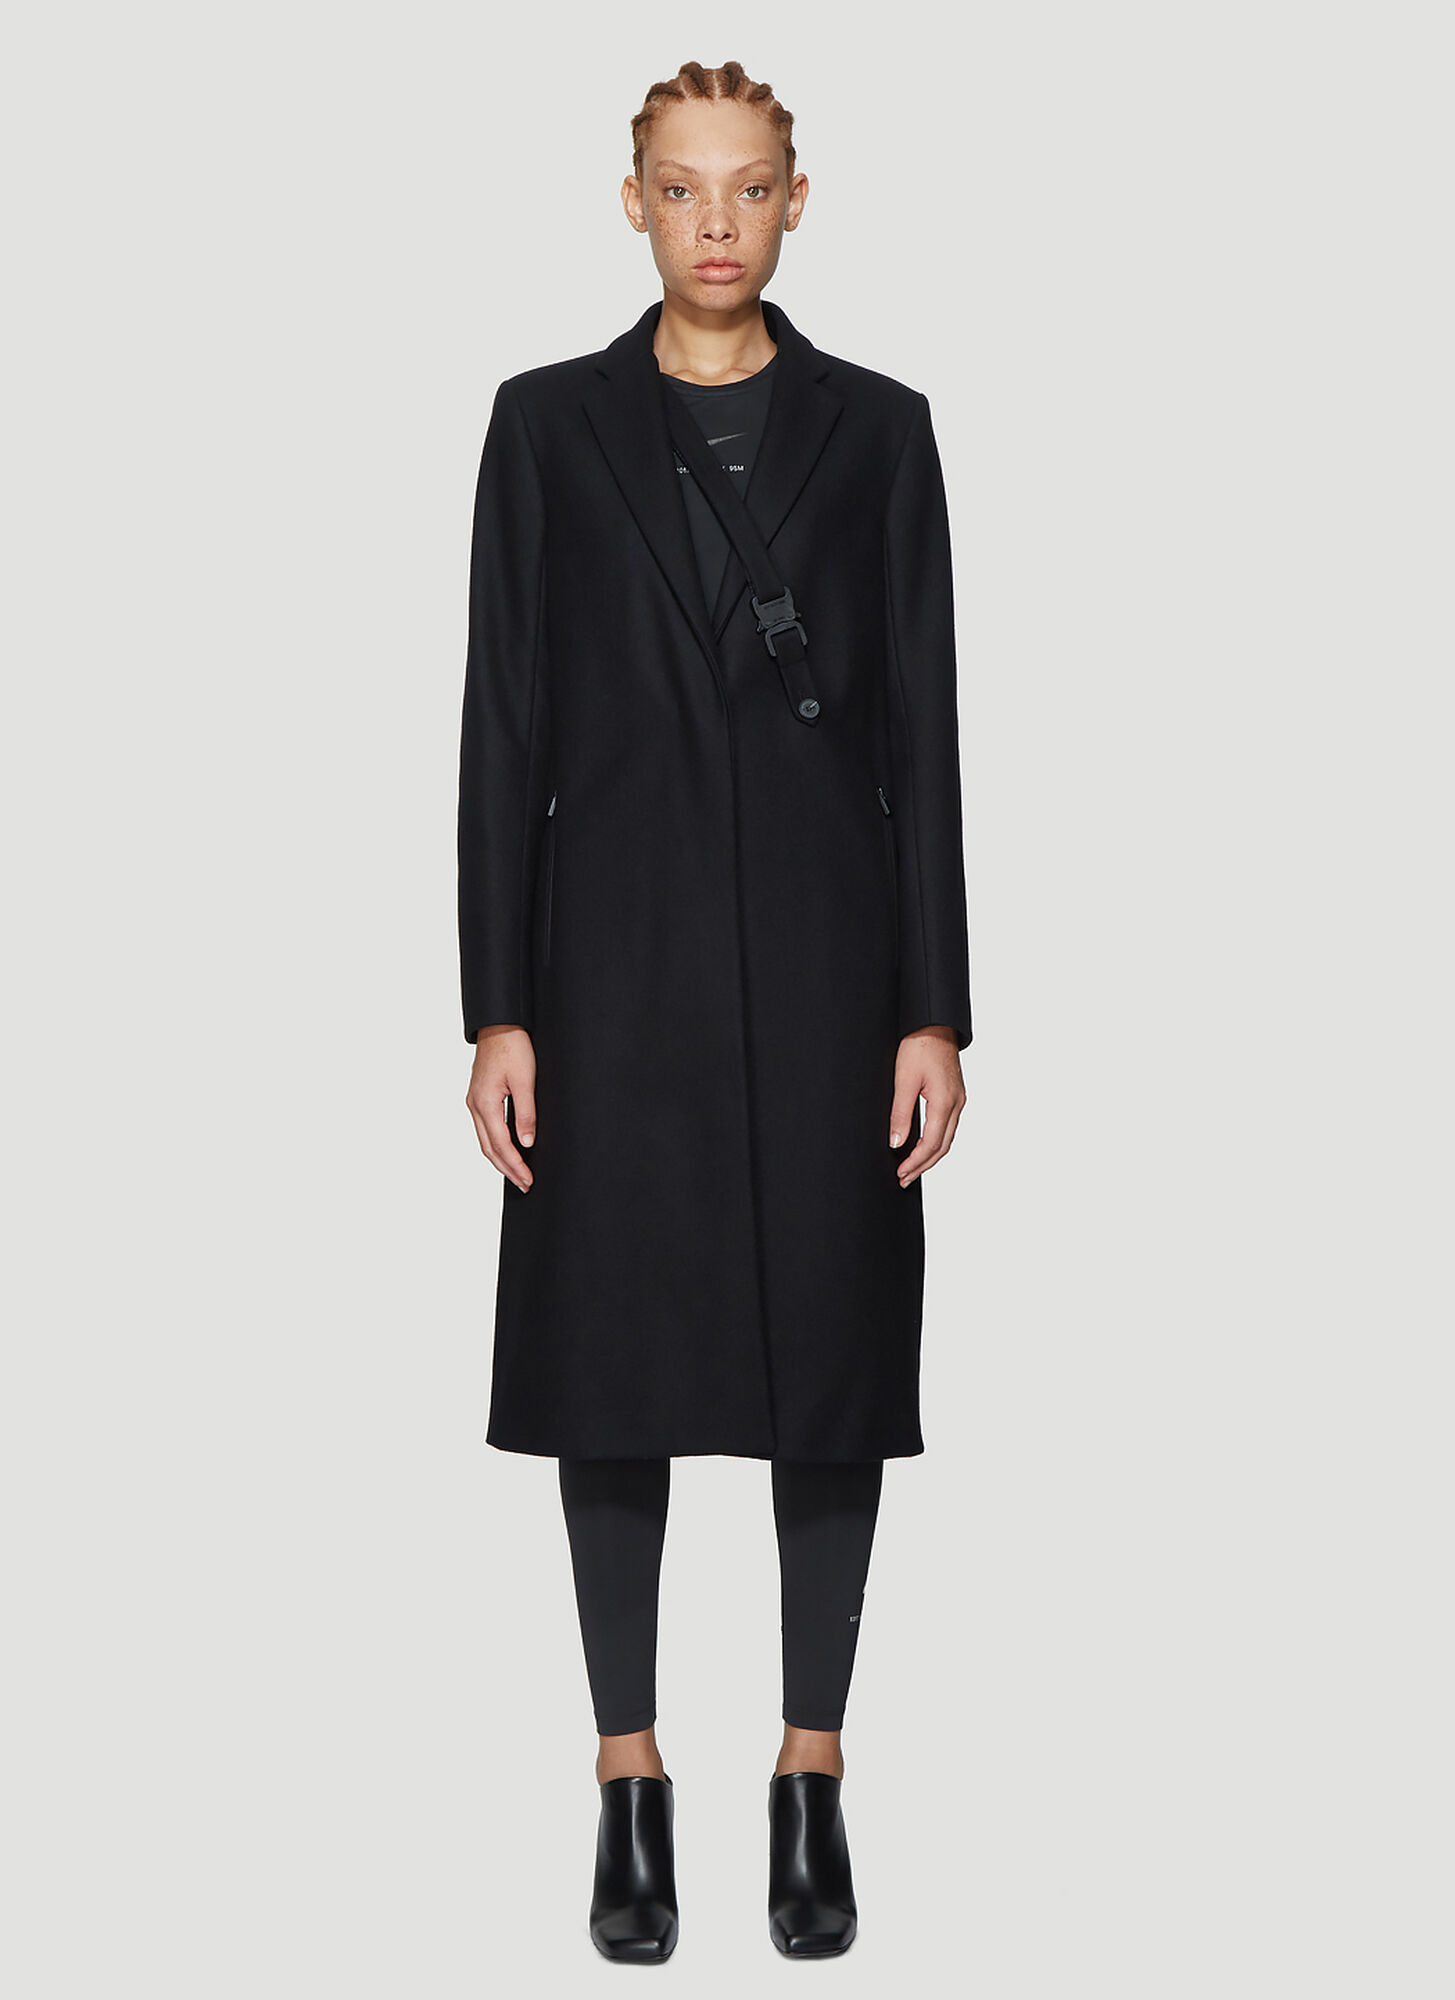 1017 ALYX 9SM Classic Single Vent Coat in Black